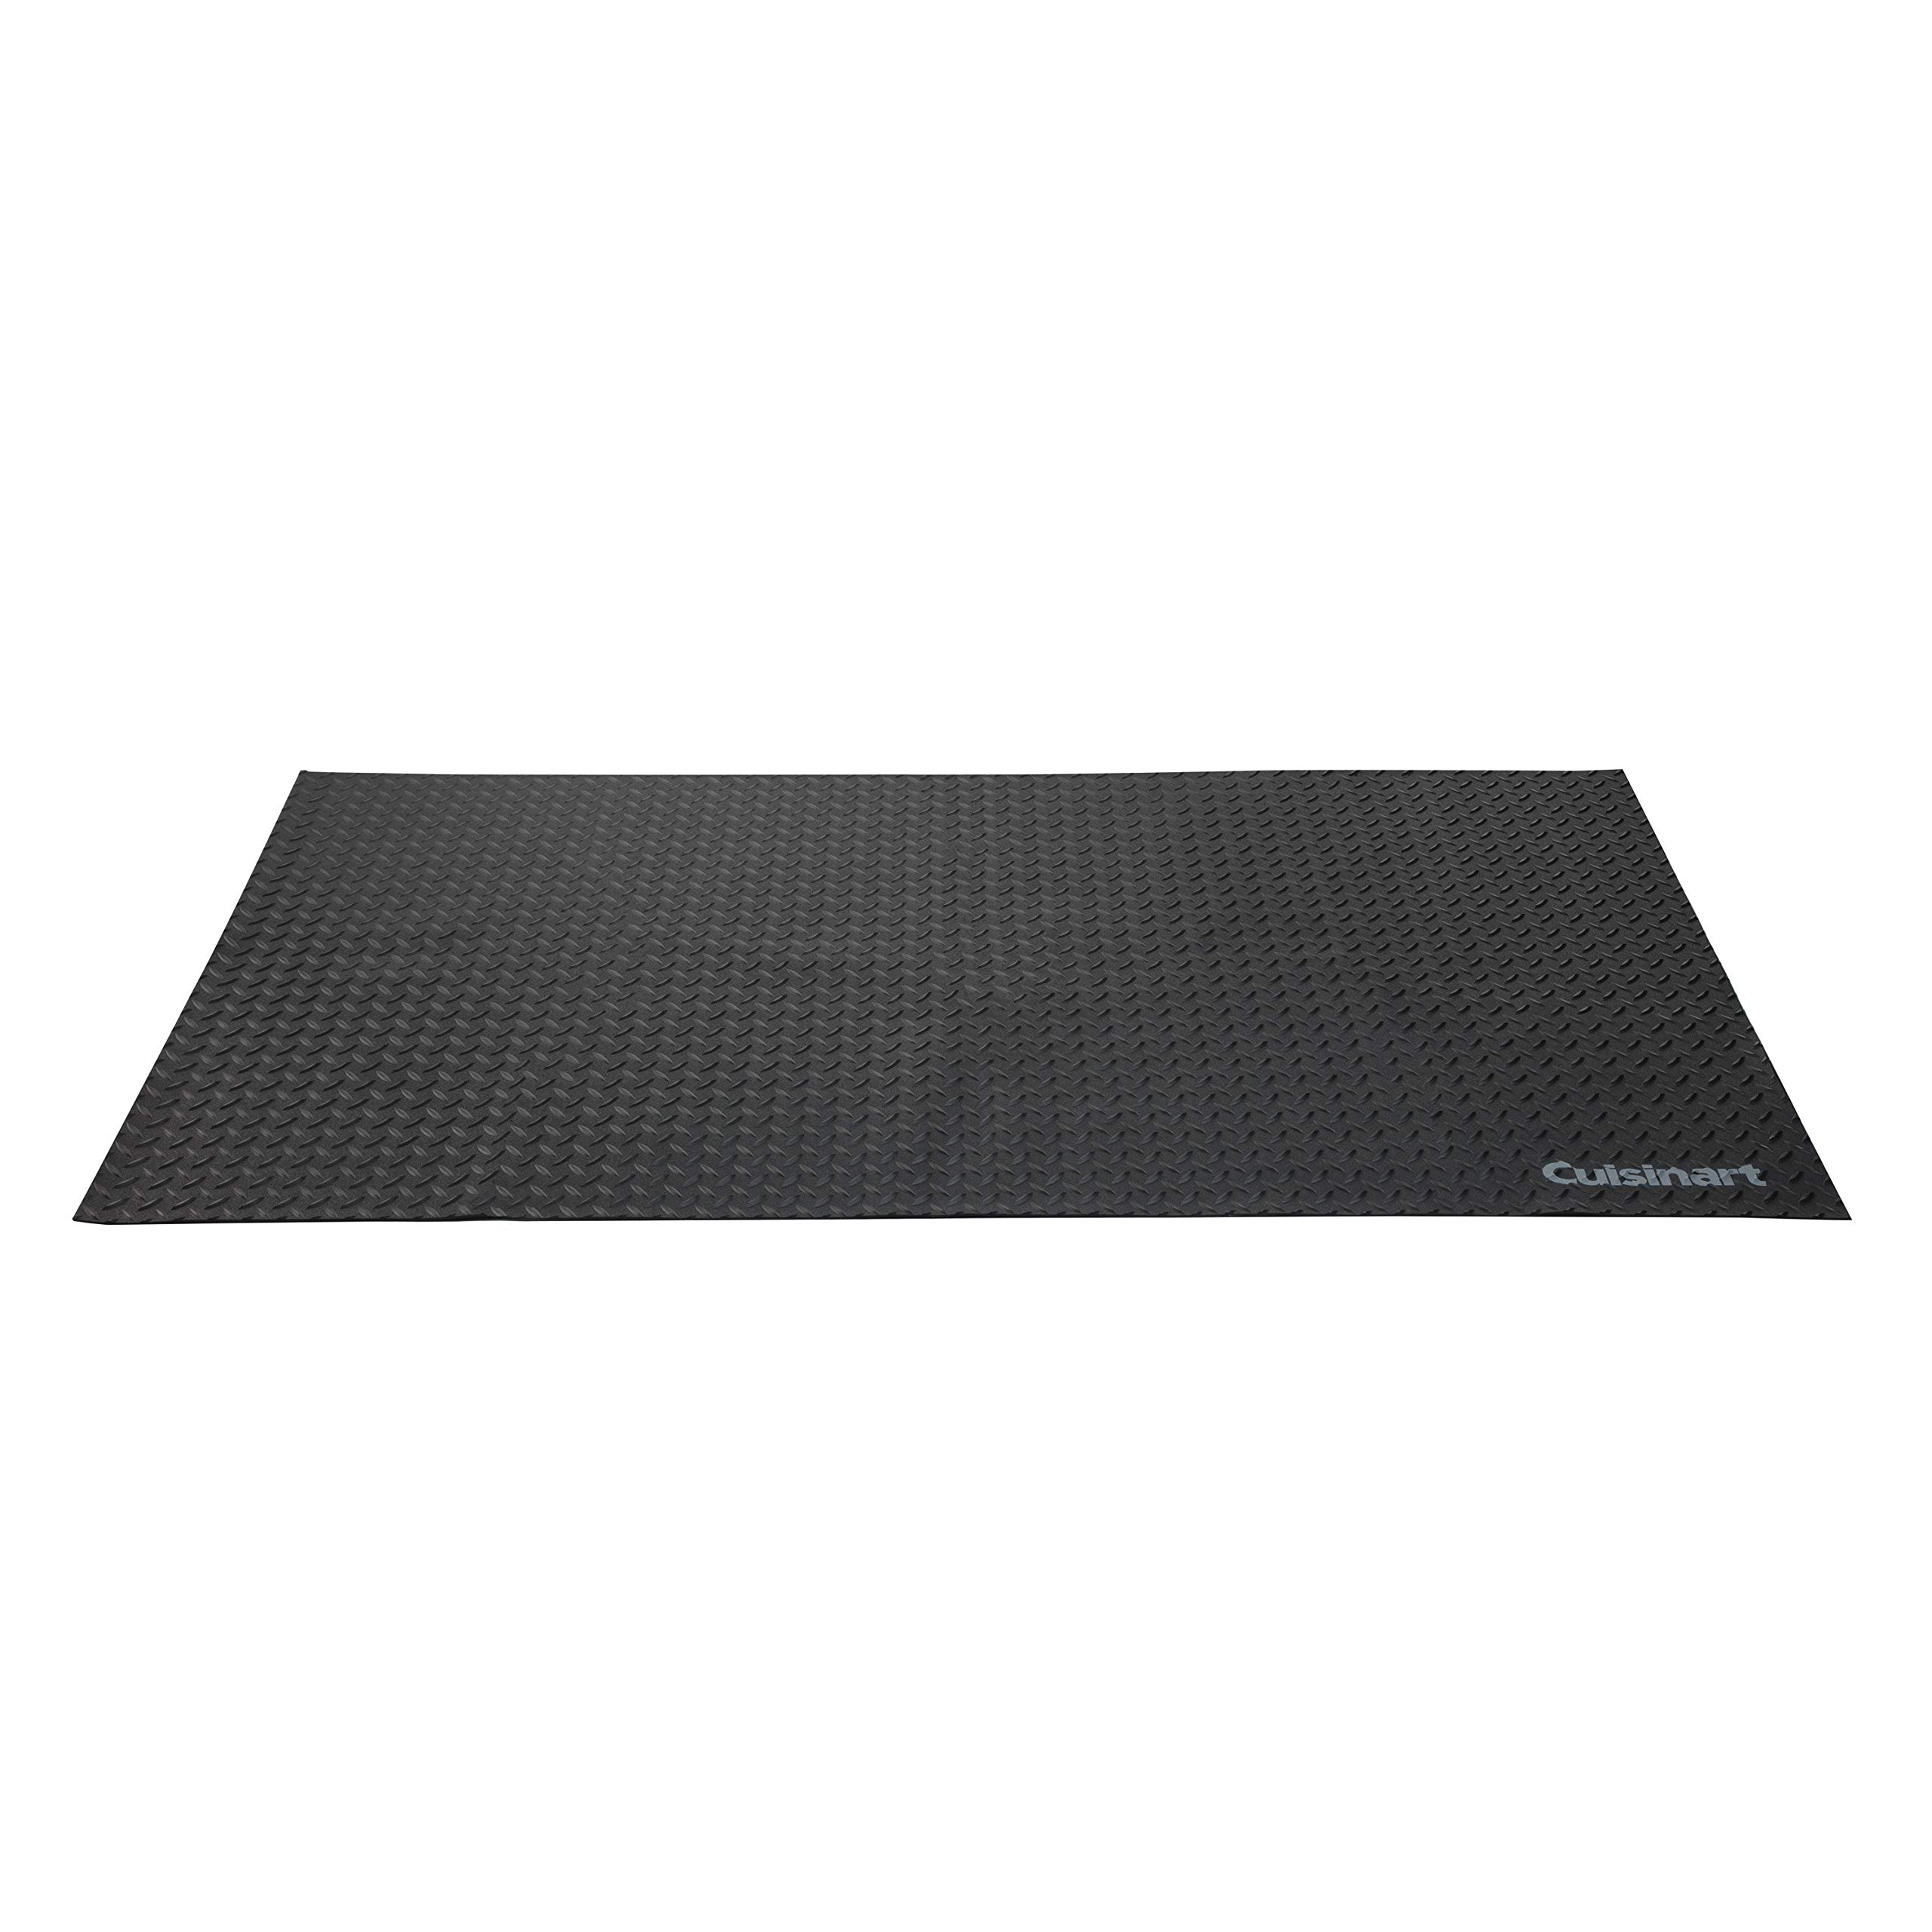 Cuisinart CGMT-300 Premium Deck and Patio Grill Mat, 65'' x 36 by Cuisinart